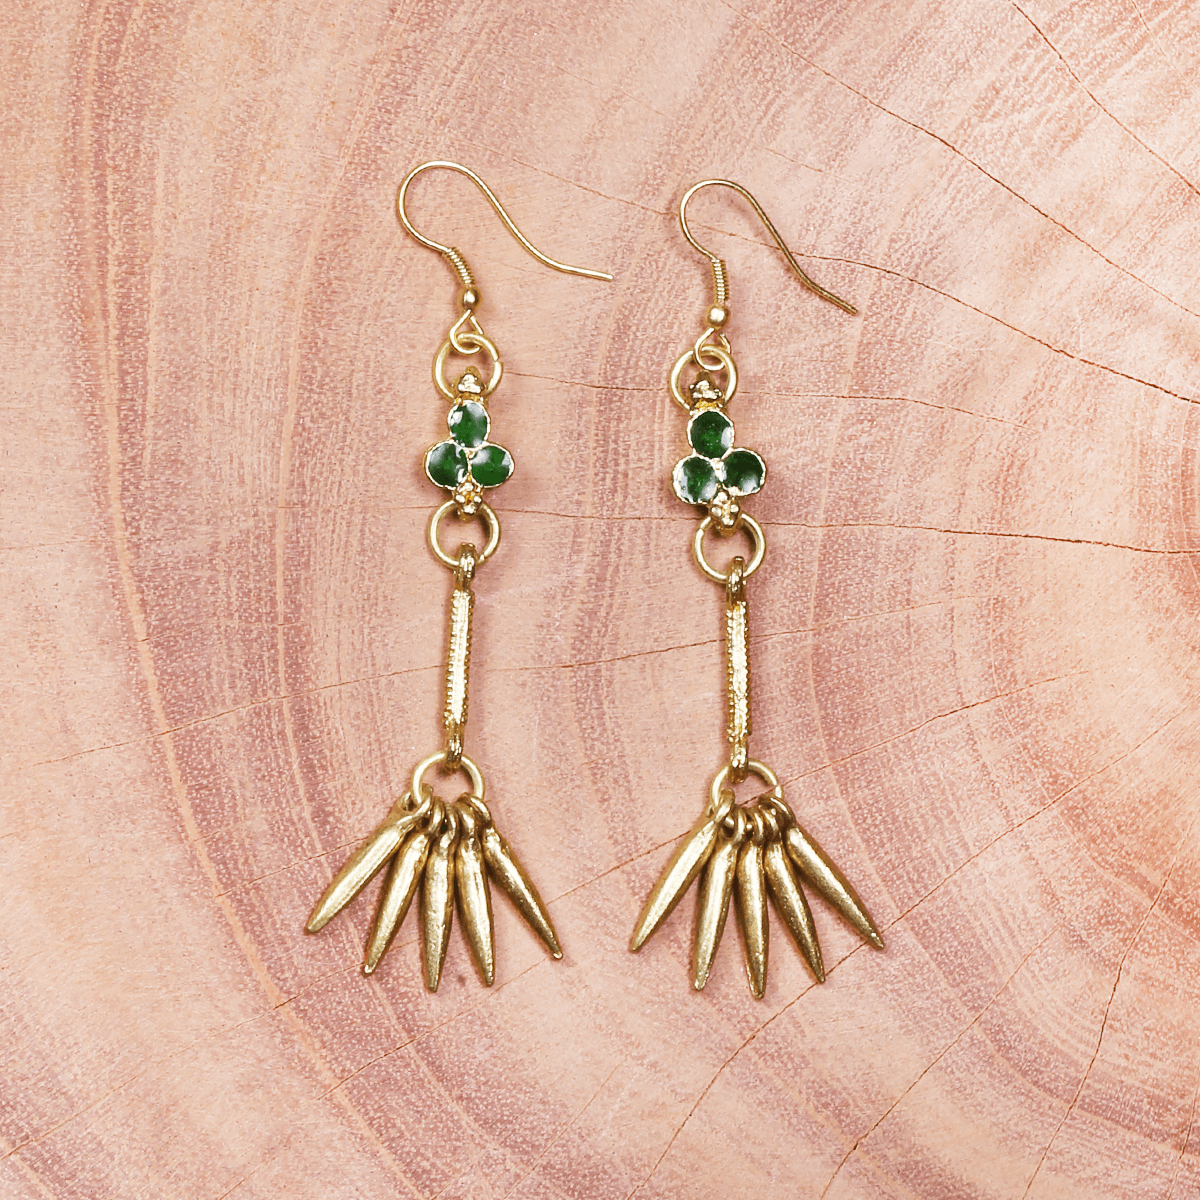 Green and gold metal earring